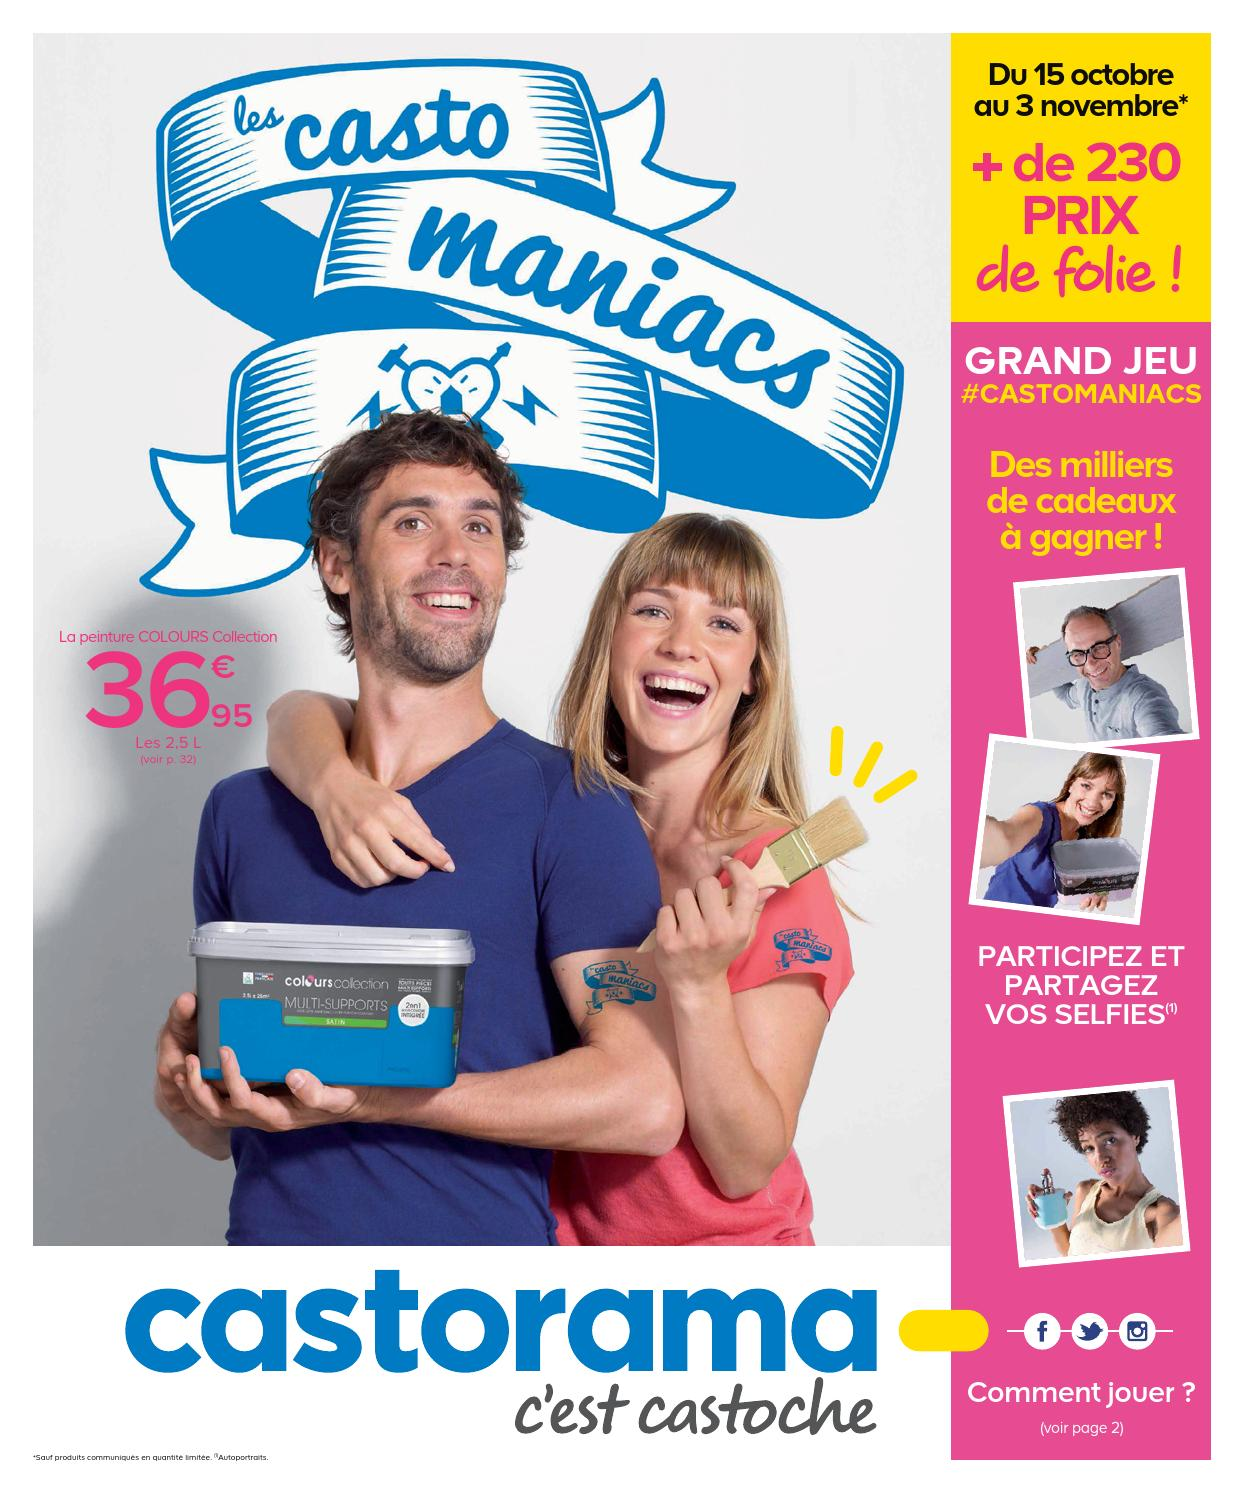 Casto Toulon Castorama Catalogue 15octobre 3novembre2014 By Promocatalogues